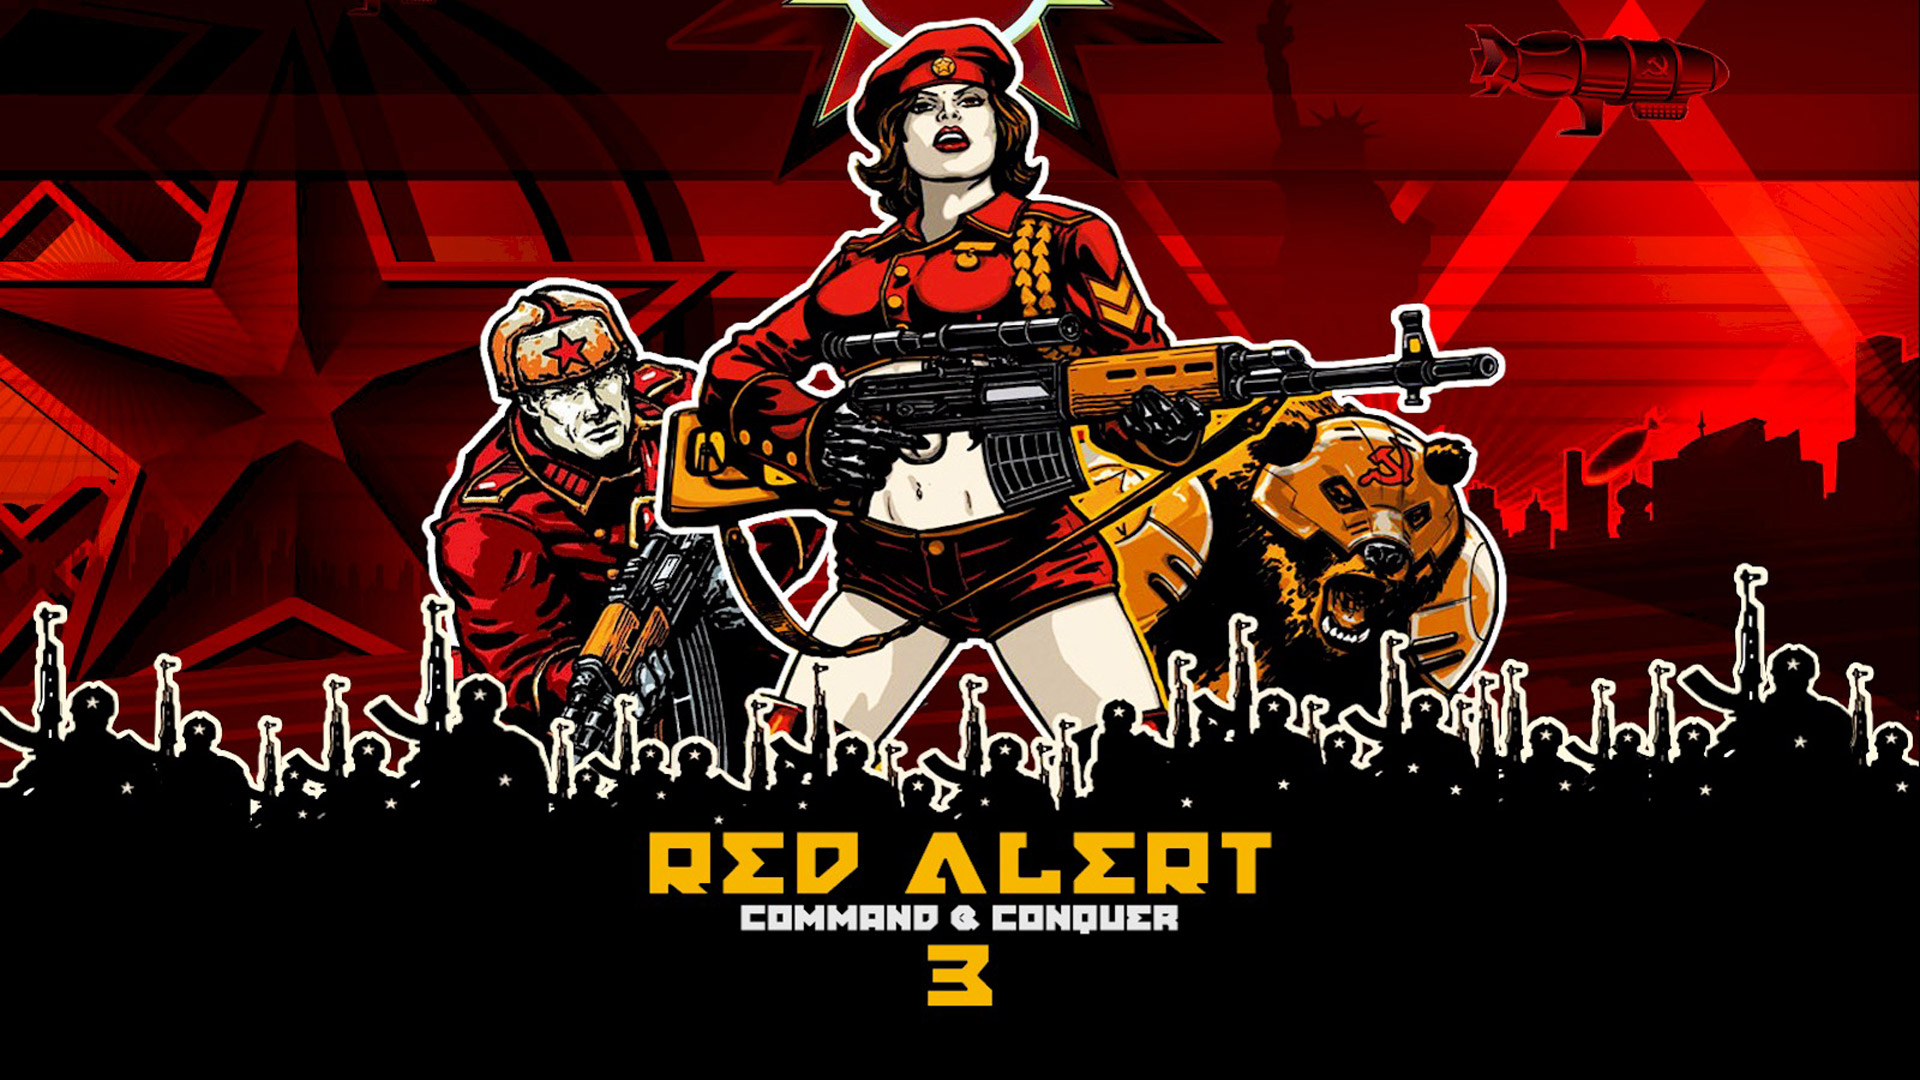 Free Command & Conquer: Red Alert 3 Wallpaper in 1920x1080